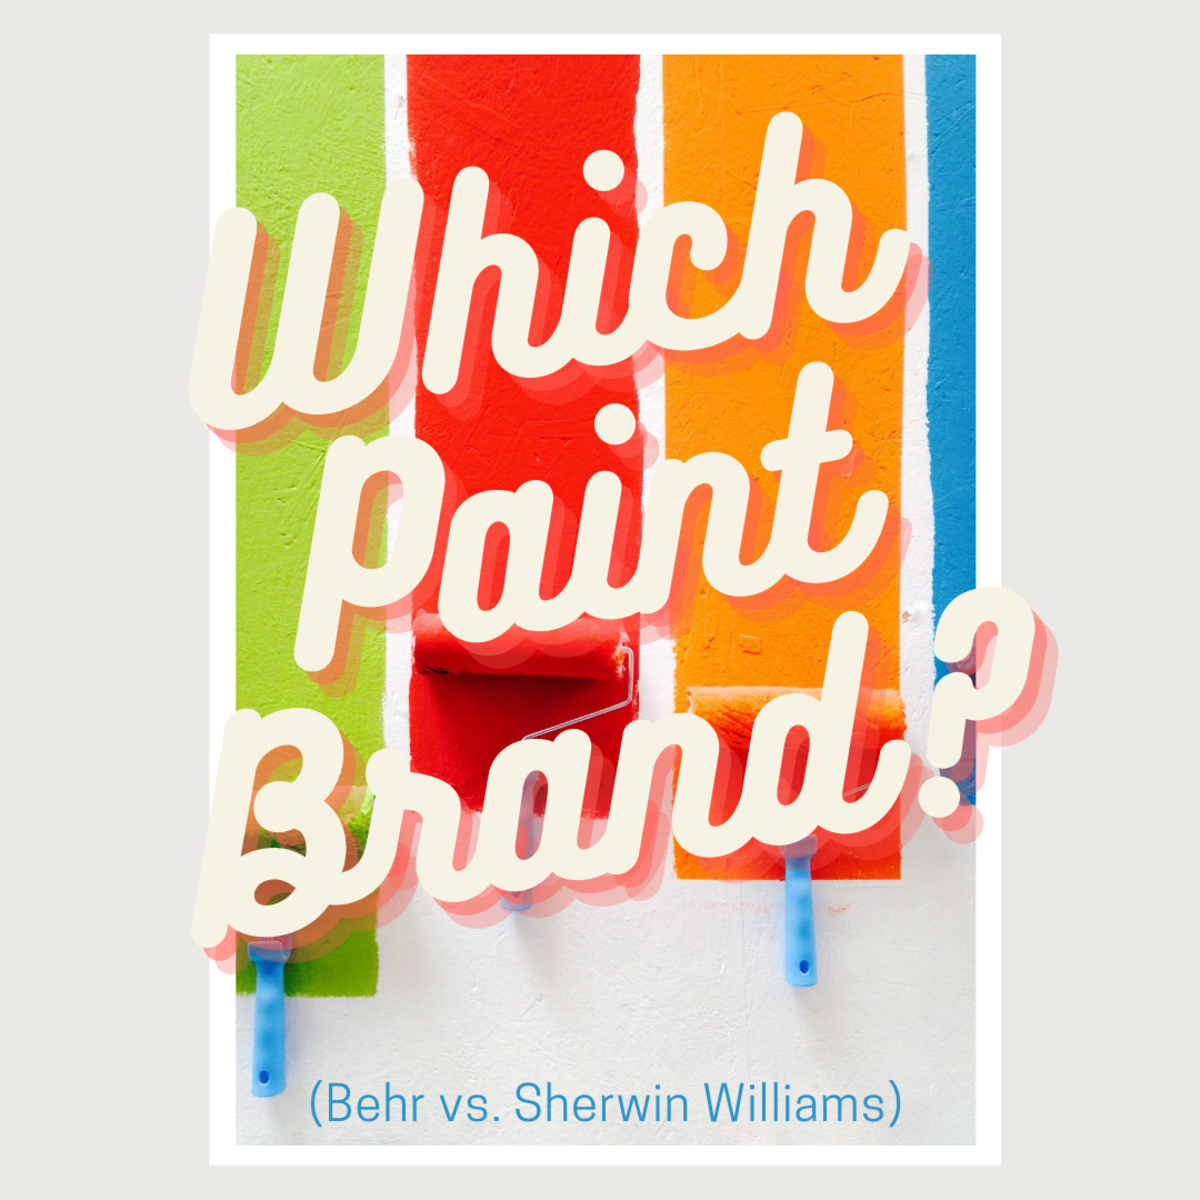 Behr Paint vs. Sherwin Williams: Which One Is Better?